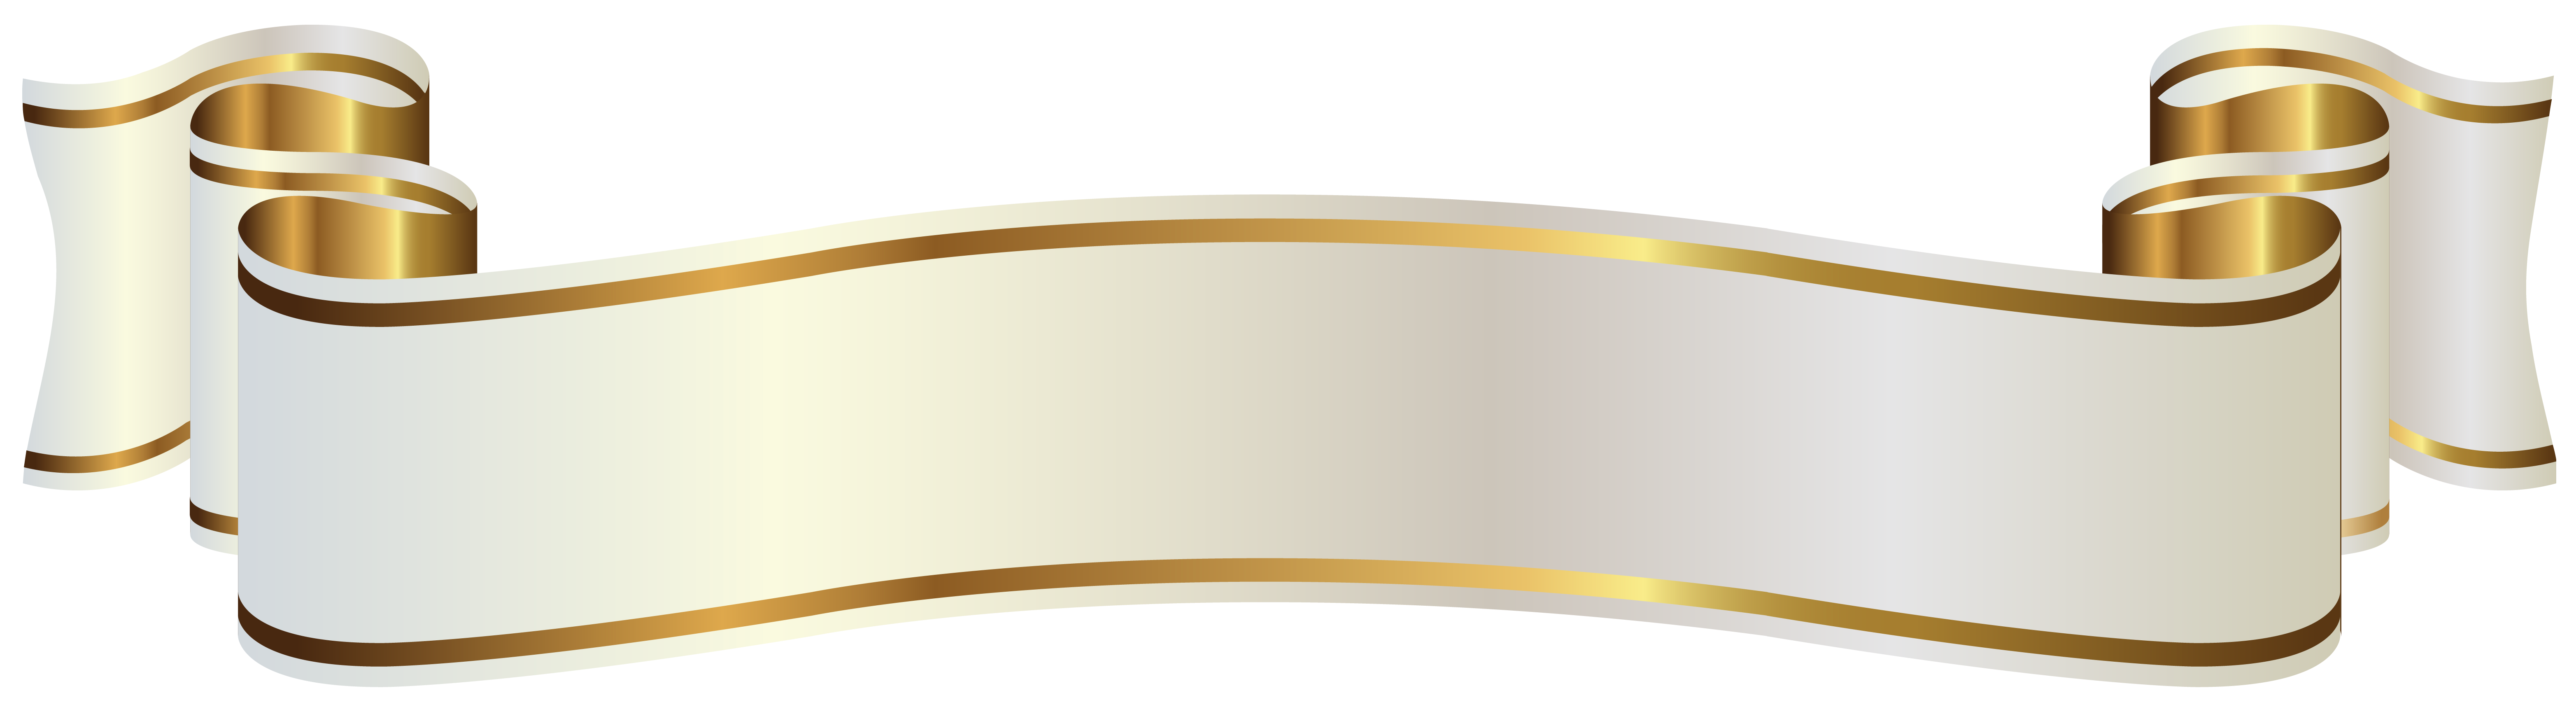 White And Gold Banner Png Clipart Image Gallery Yopriceville High Quality Images And Transparent Png Free Clipart Ribbon Banner Gold Banner Ribbon Png